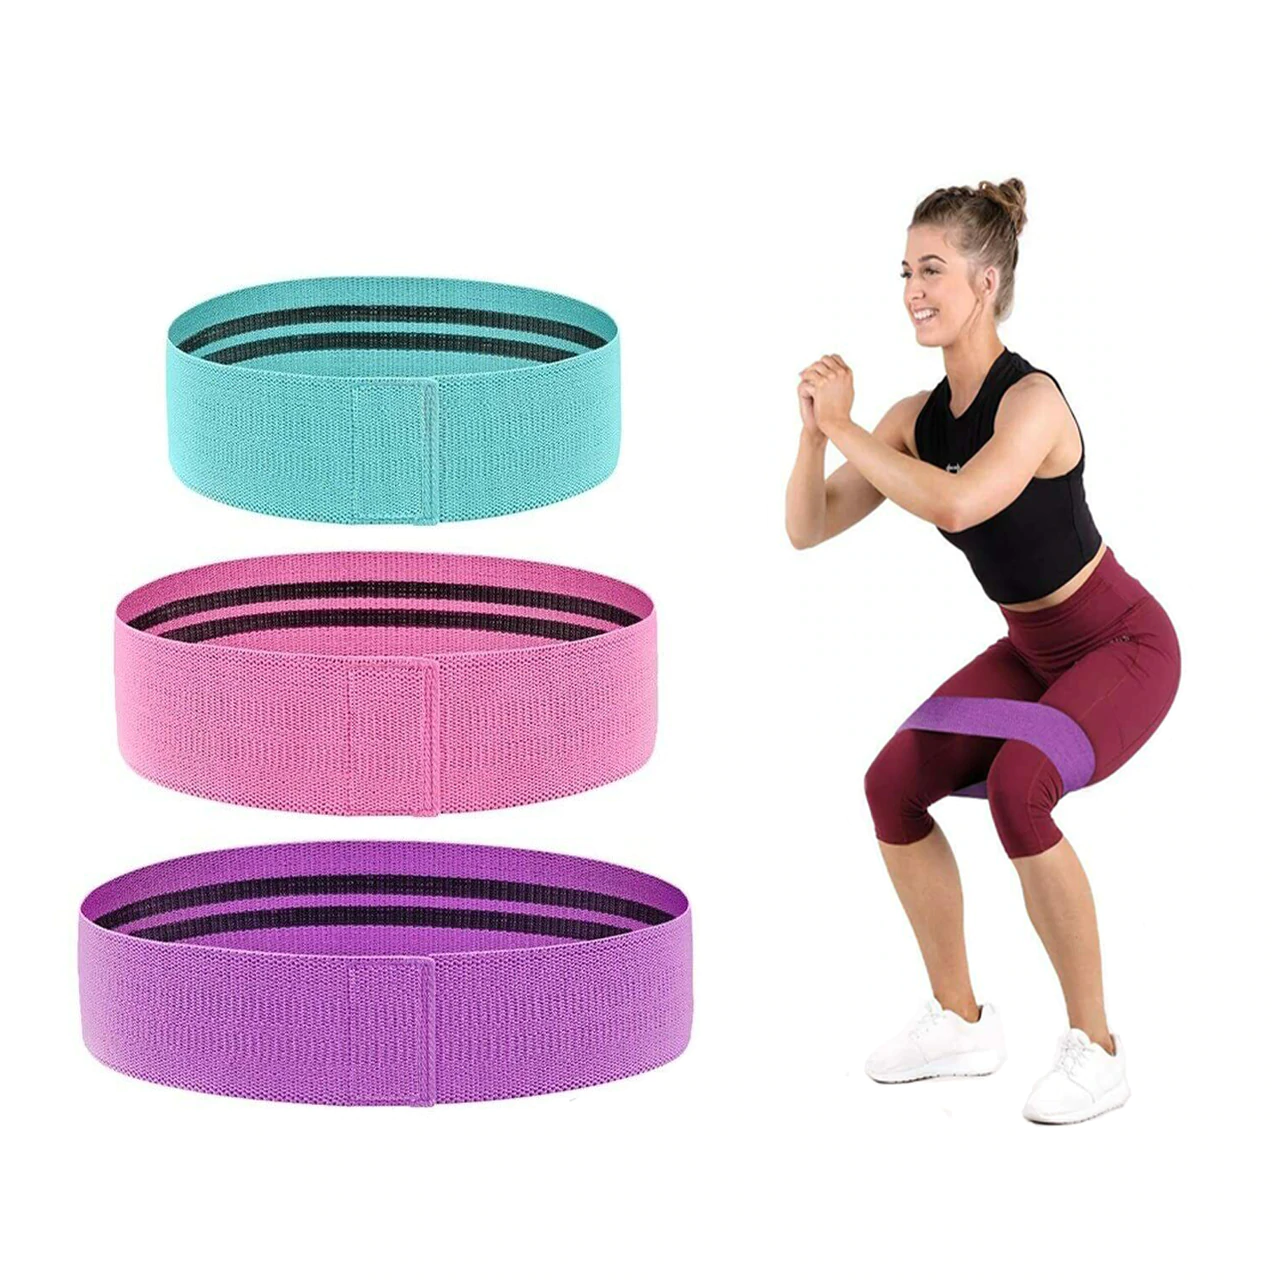 3 Booty Resistance Bands